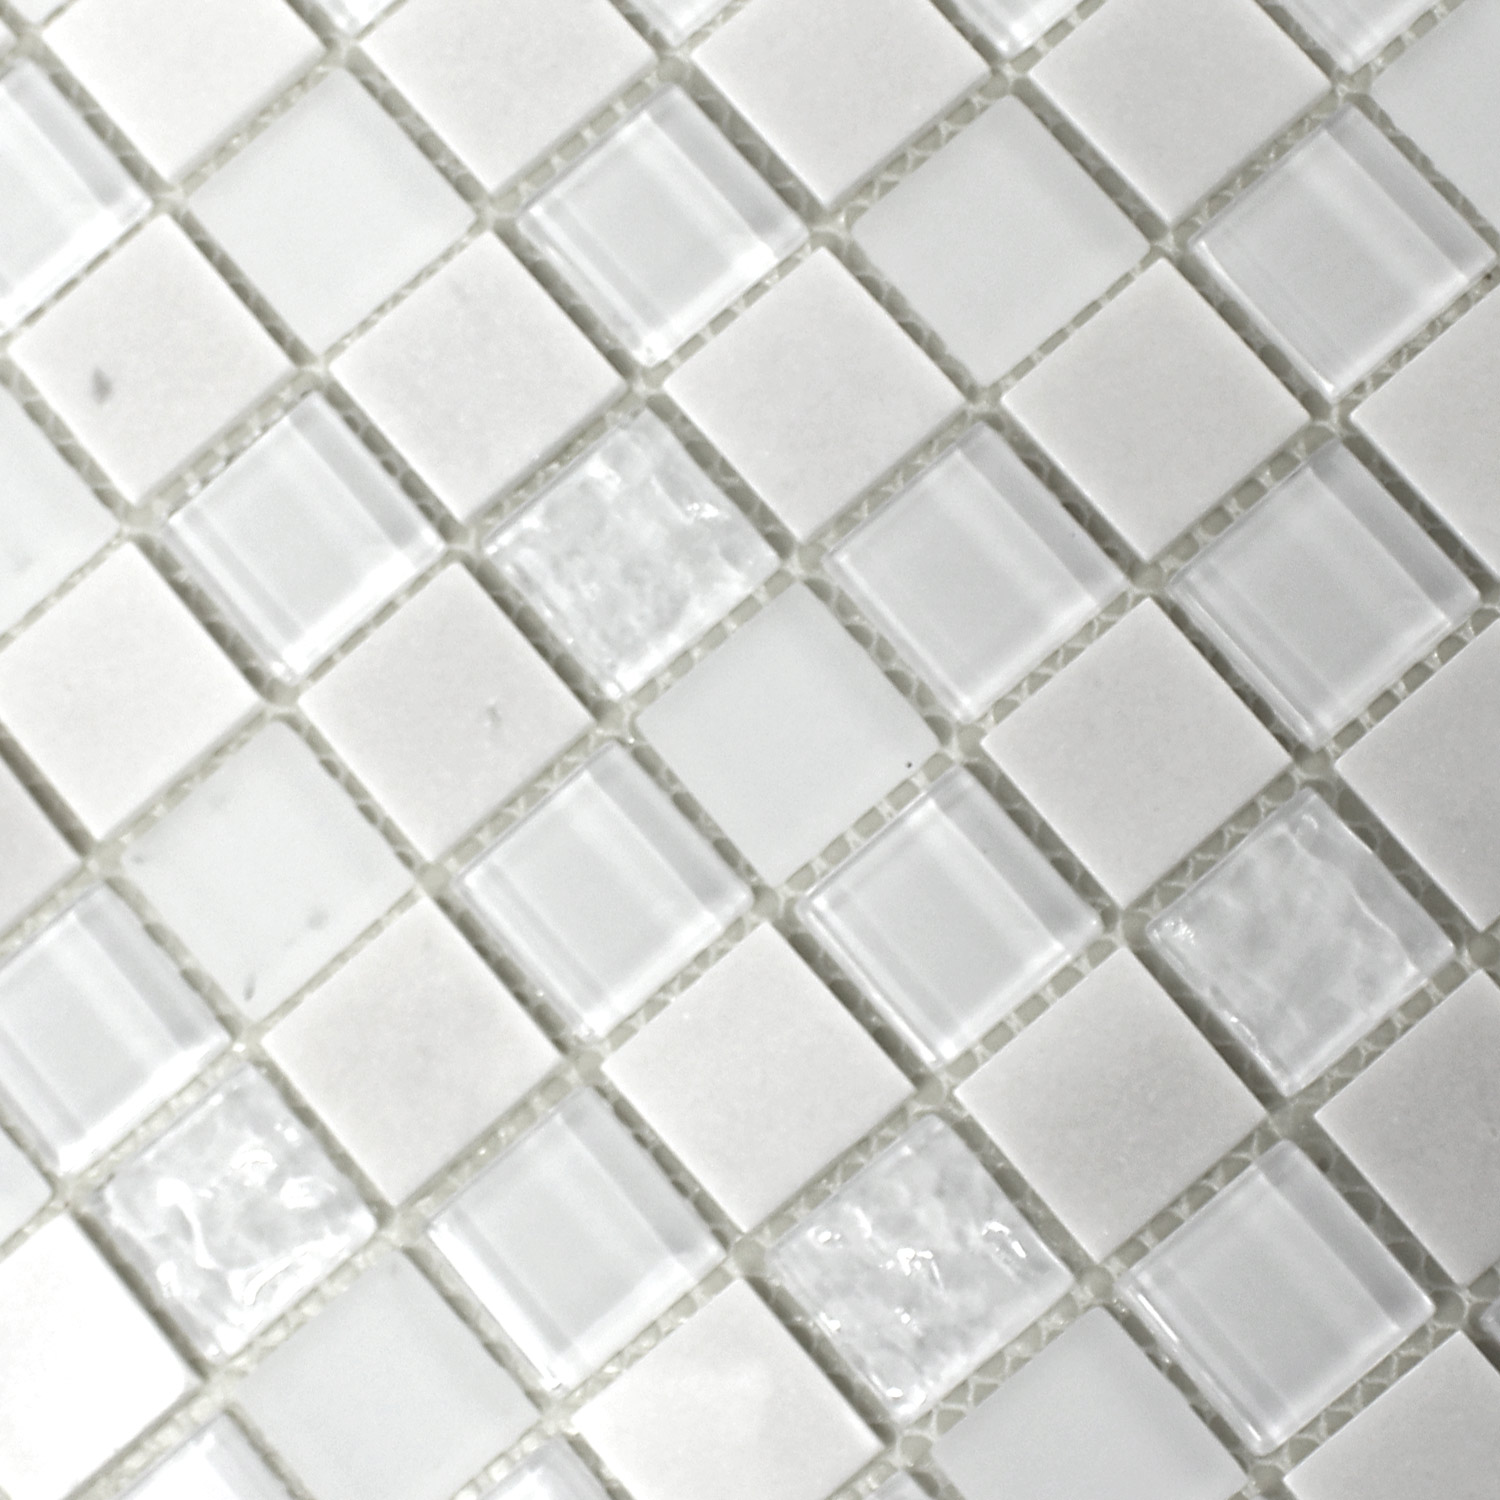 Self Adhesive Natural Stone Glass Mosaic Tiles White - TM33433